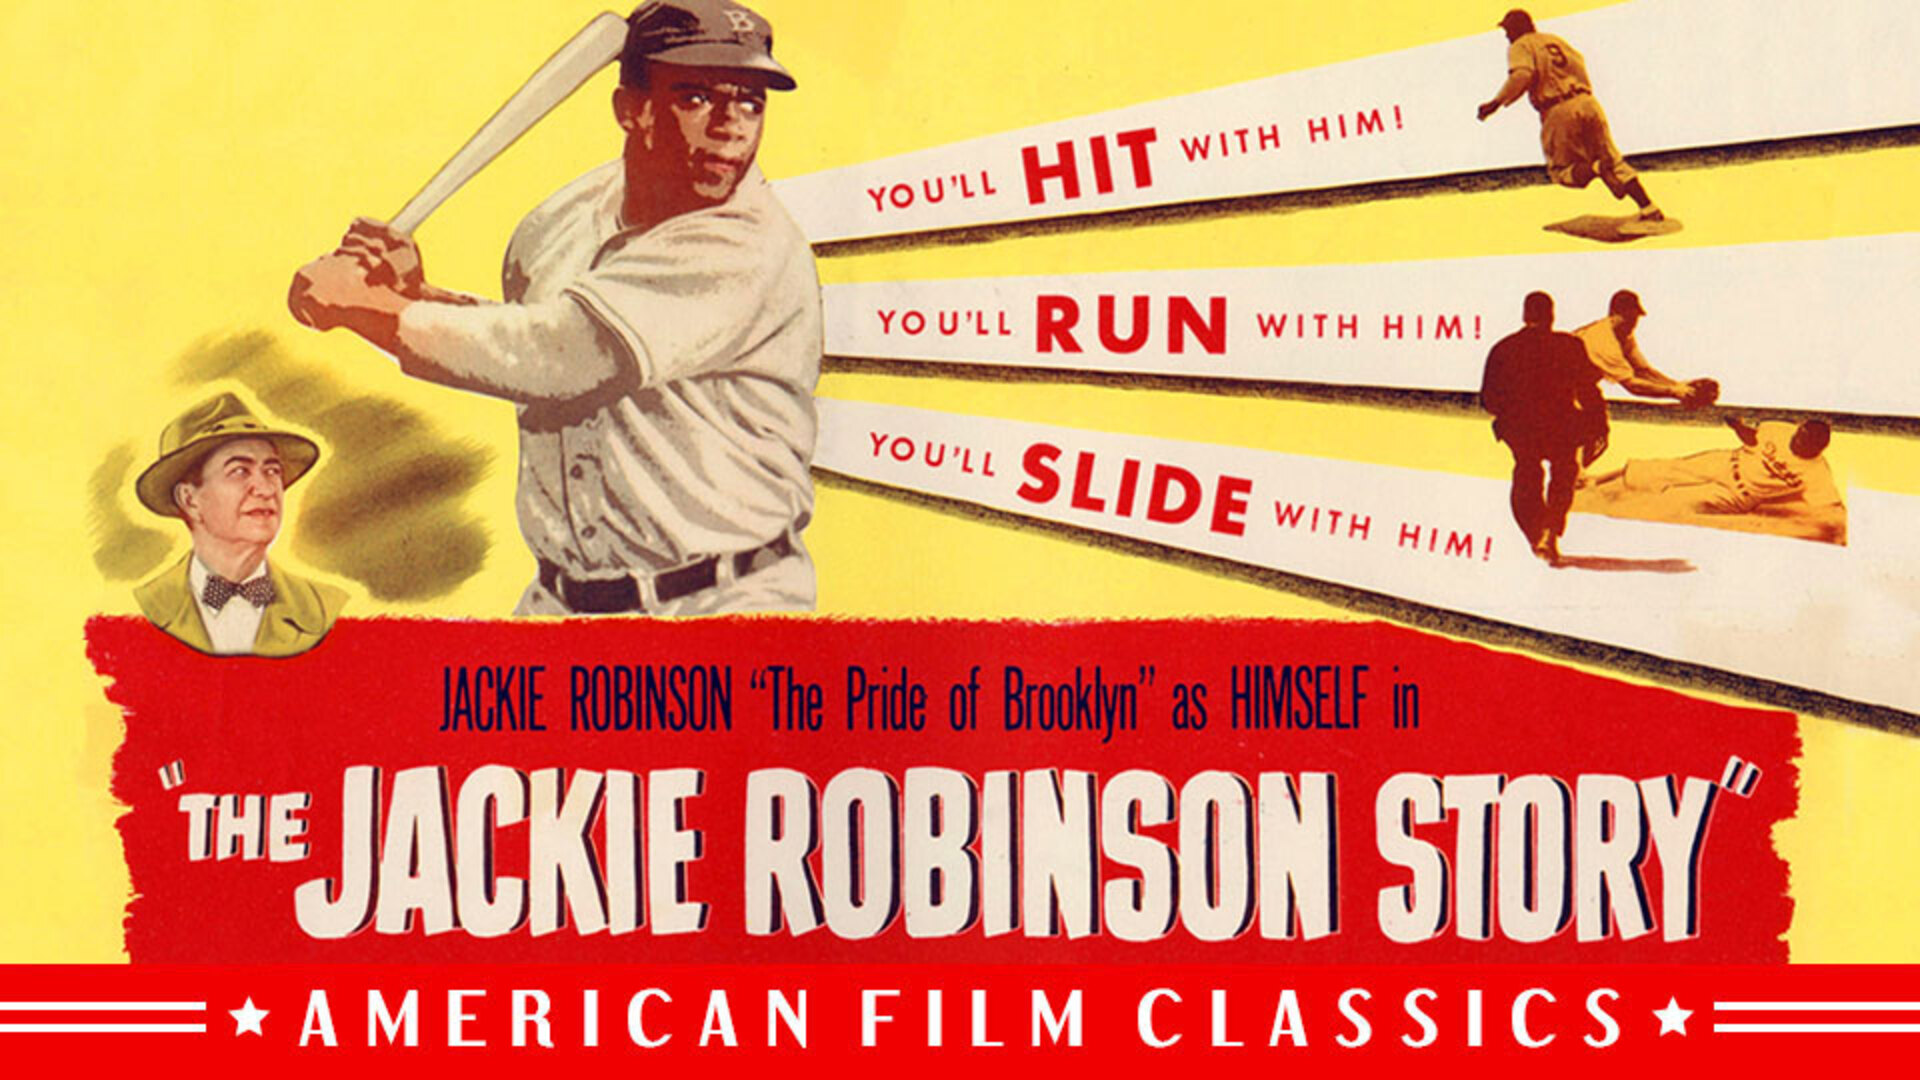 The Jackie Robinson Story (1950) Poster